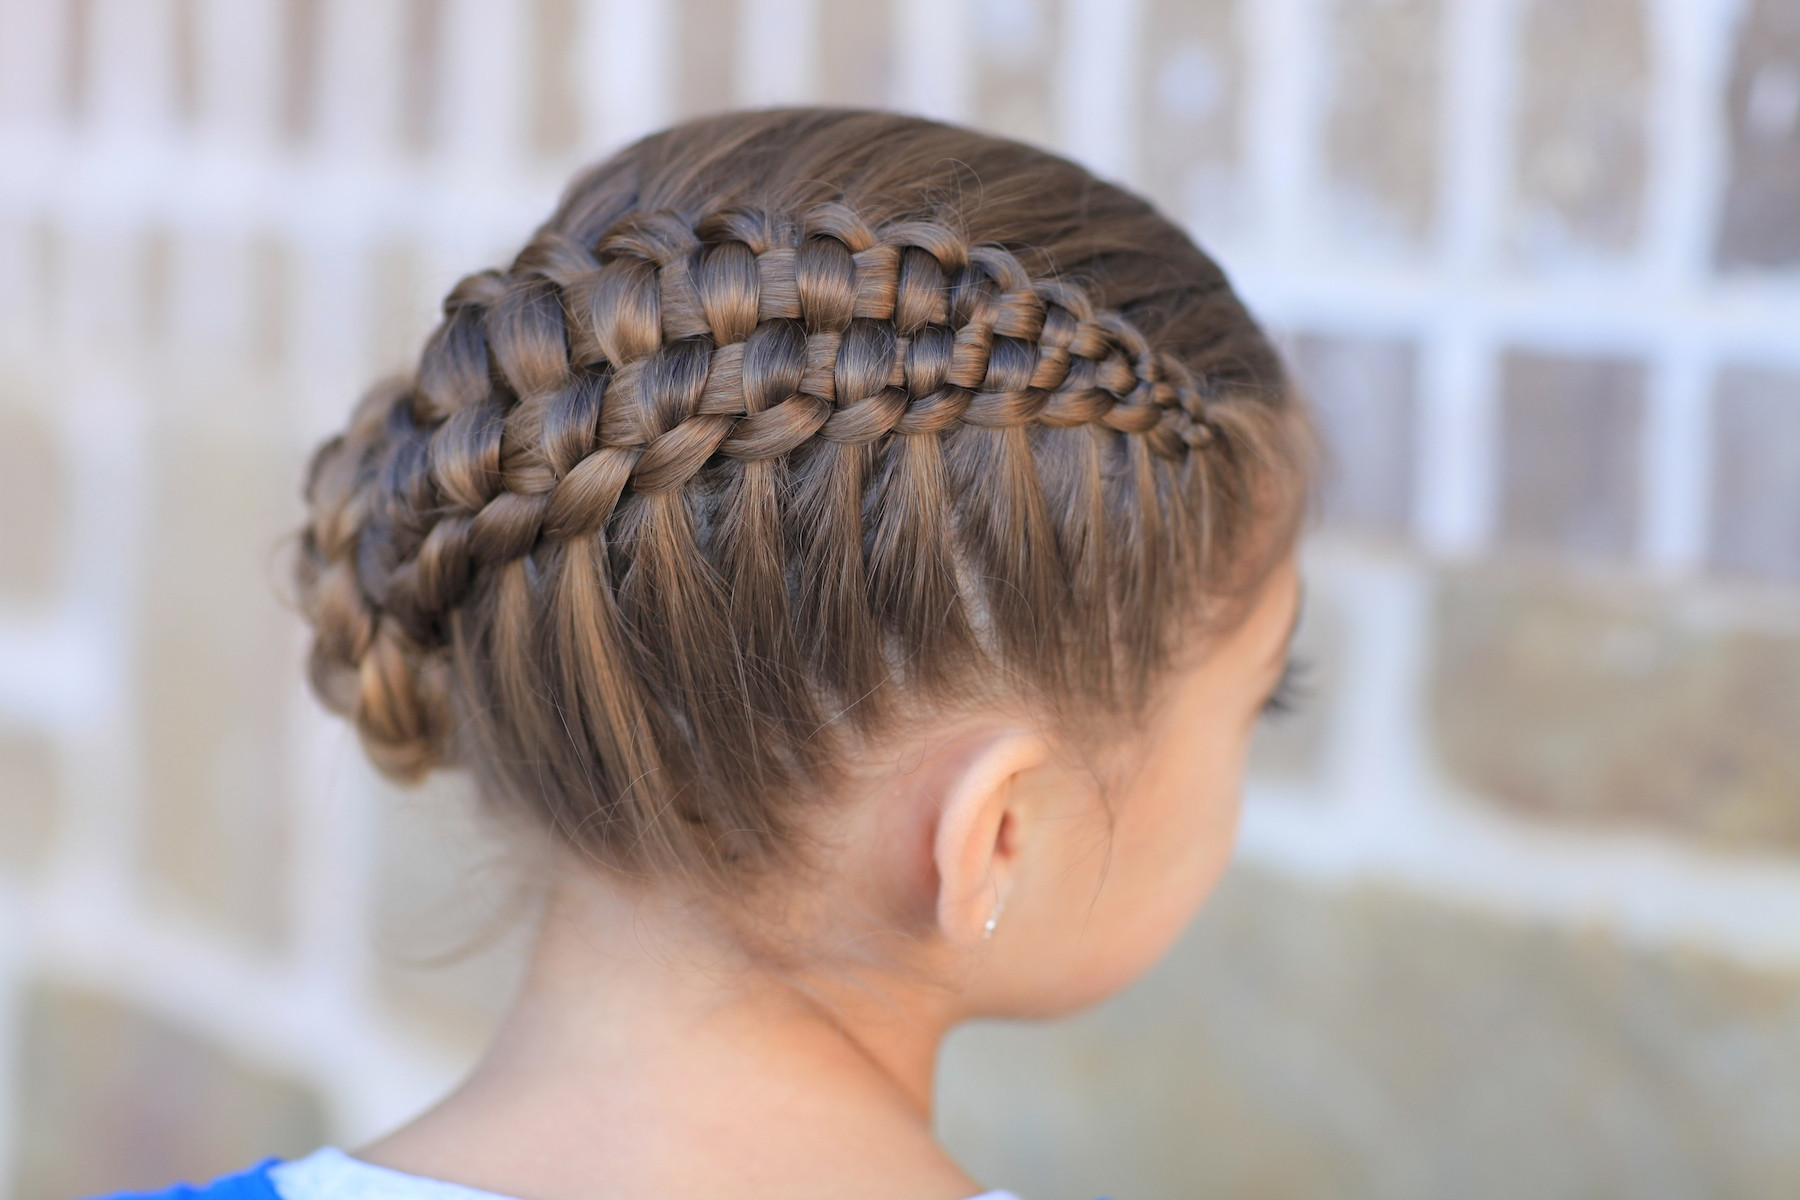 Best ideas about Pretty Girls Hairstyles . Save or Pin How to Create a Zipper Braid Updo Hairstyles Now.